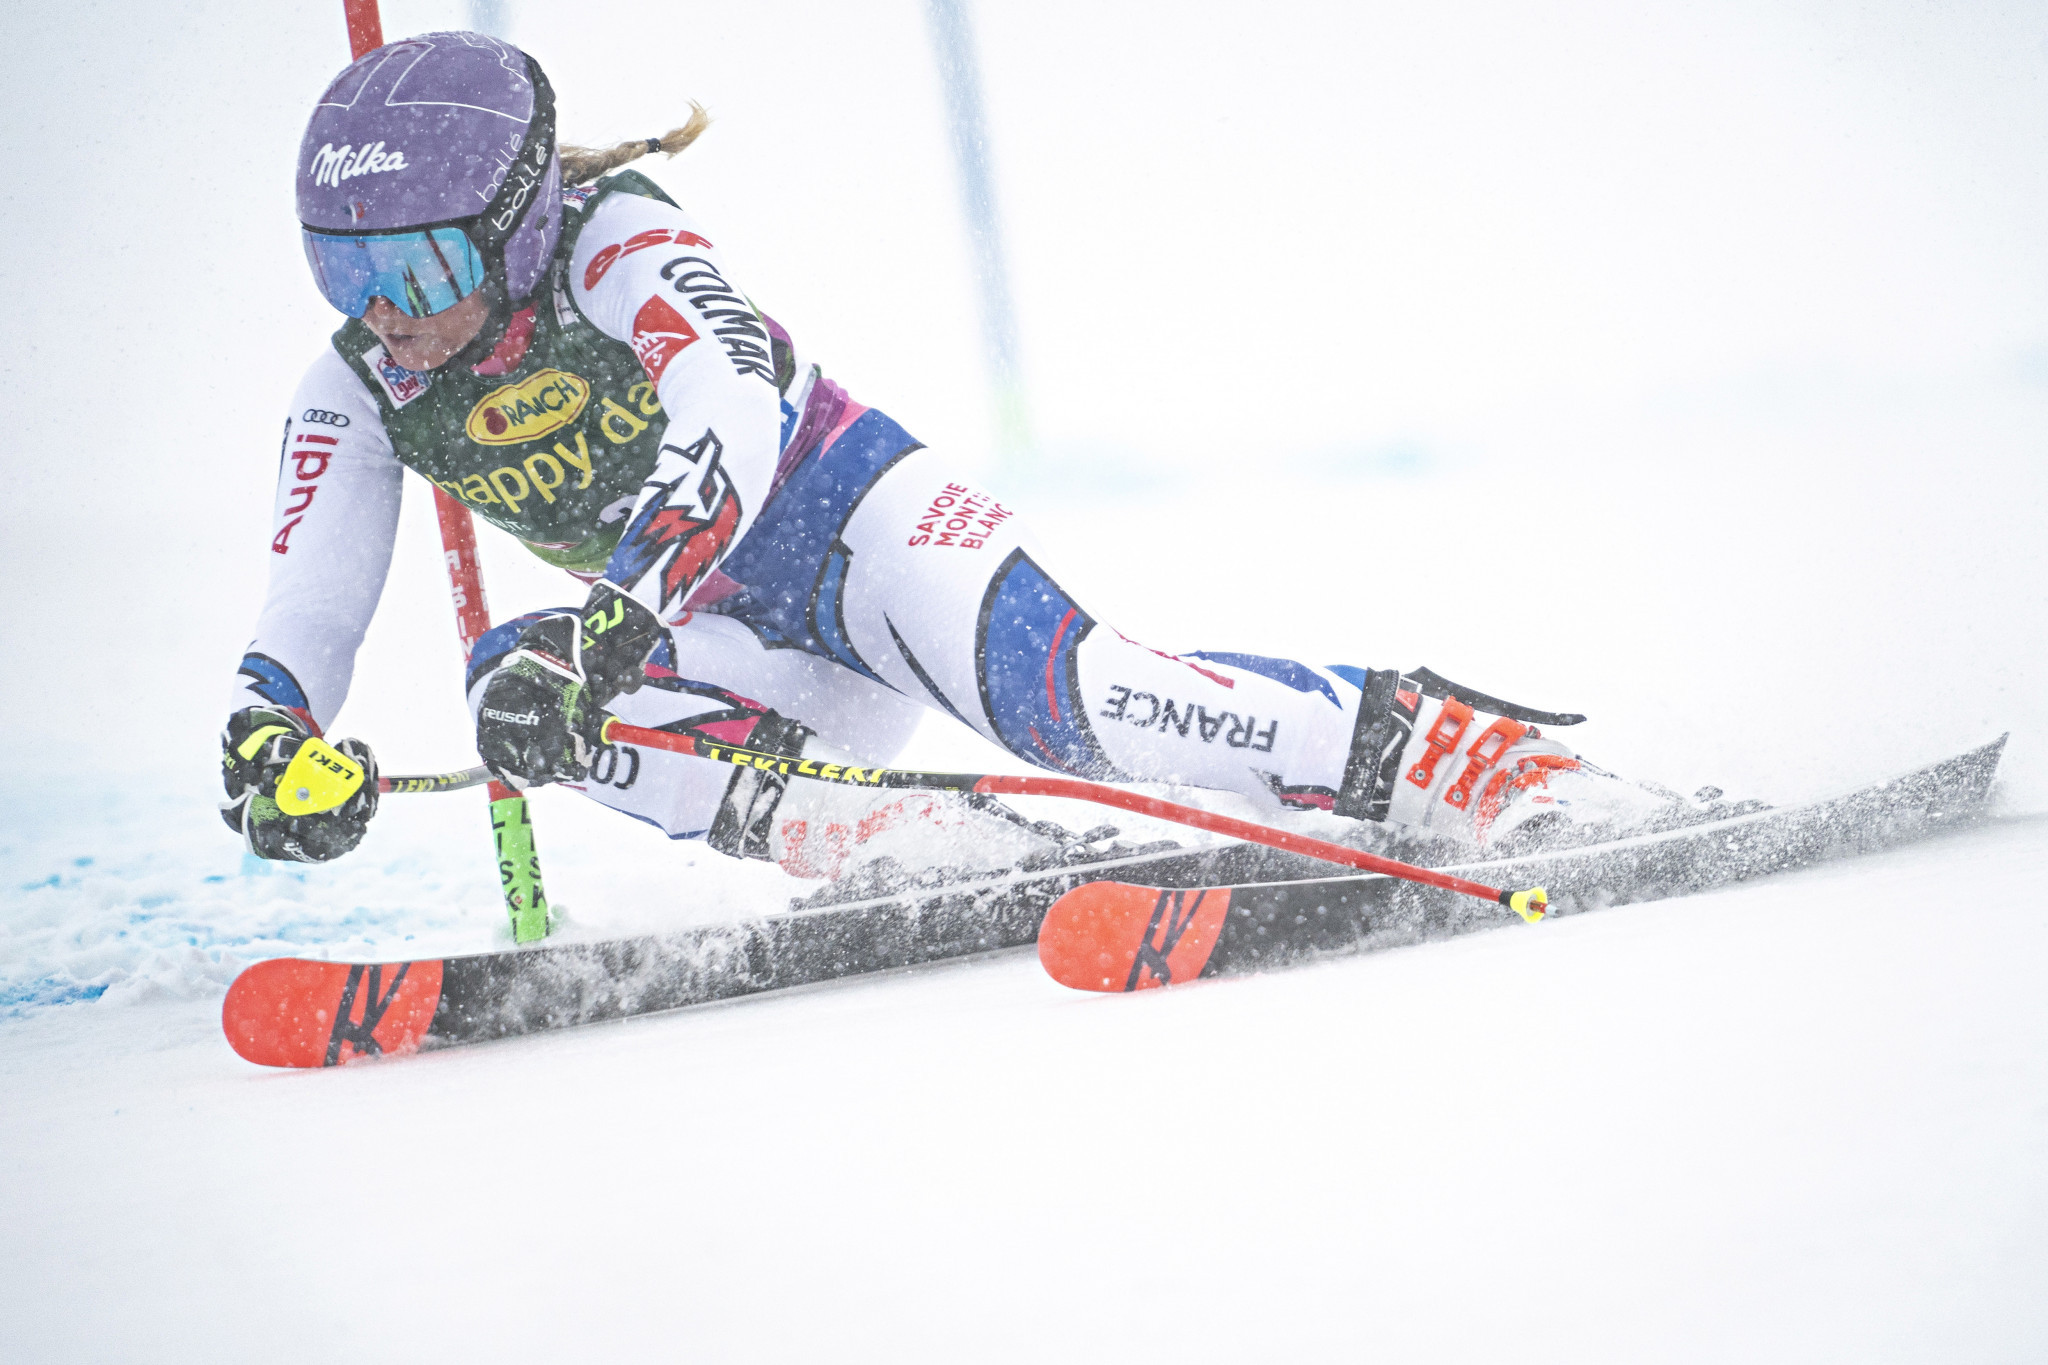 Worley secures giant slalom victory on opening day of Alpine Skiing World Cup season